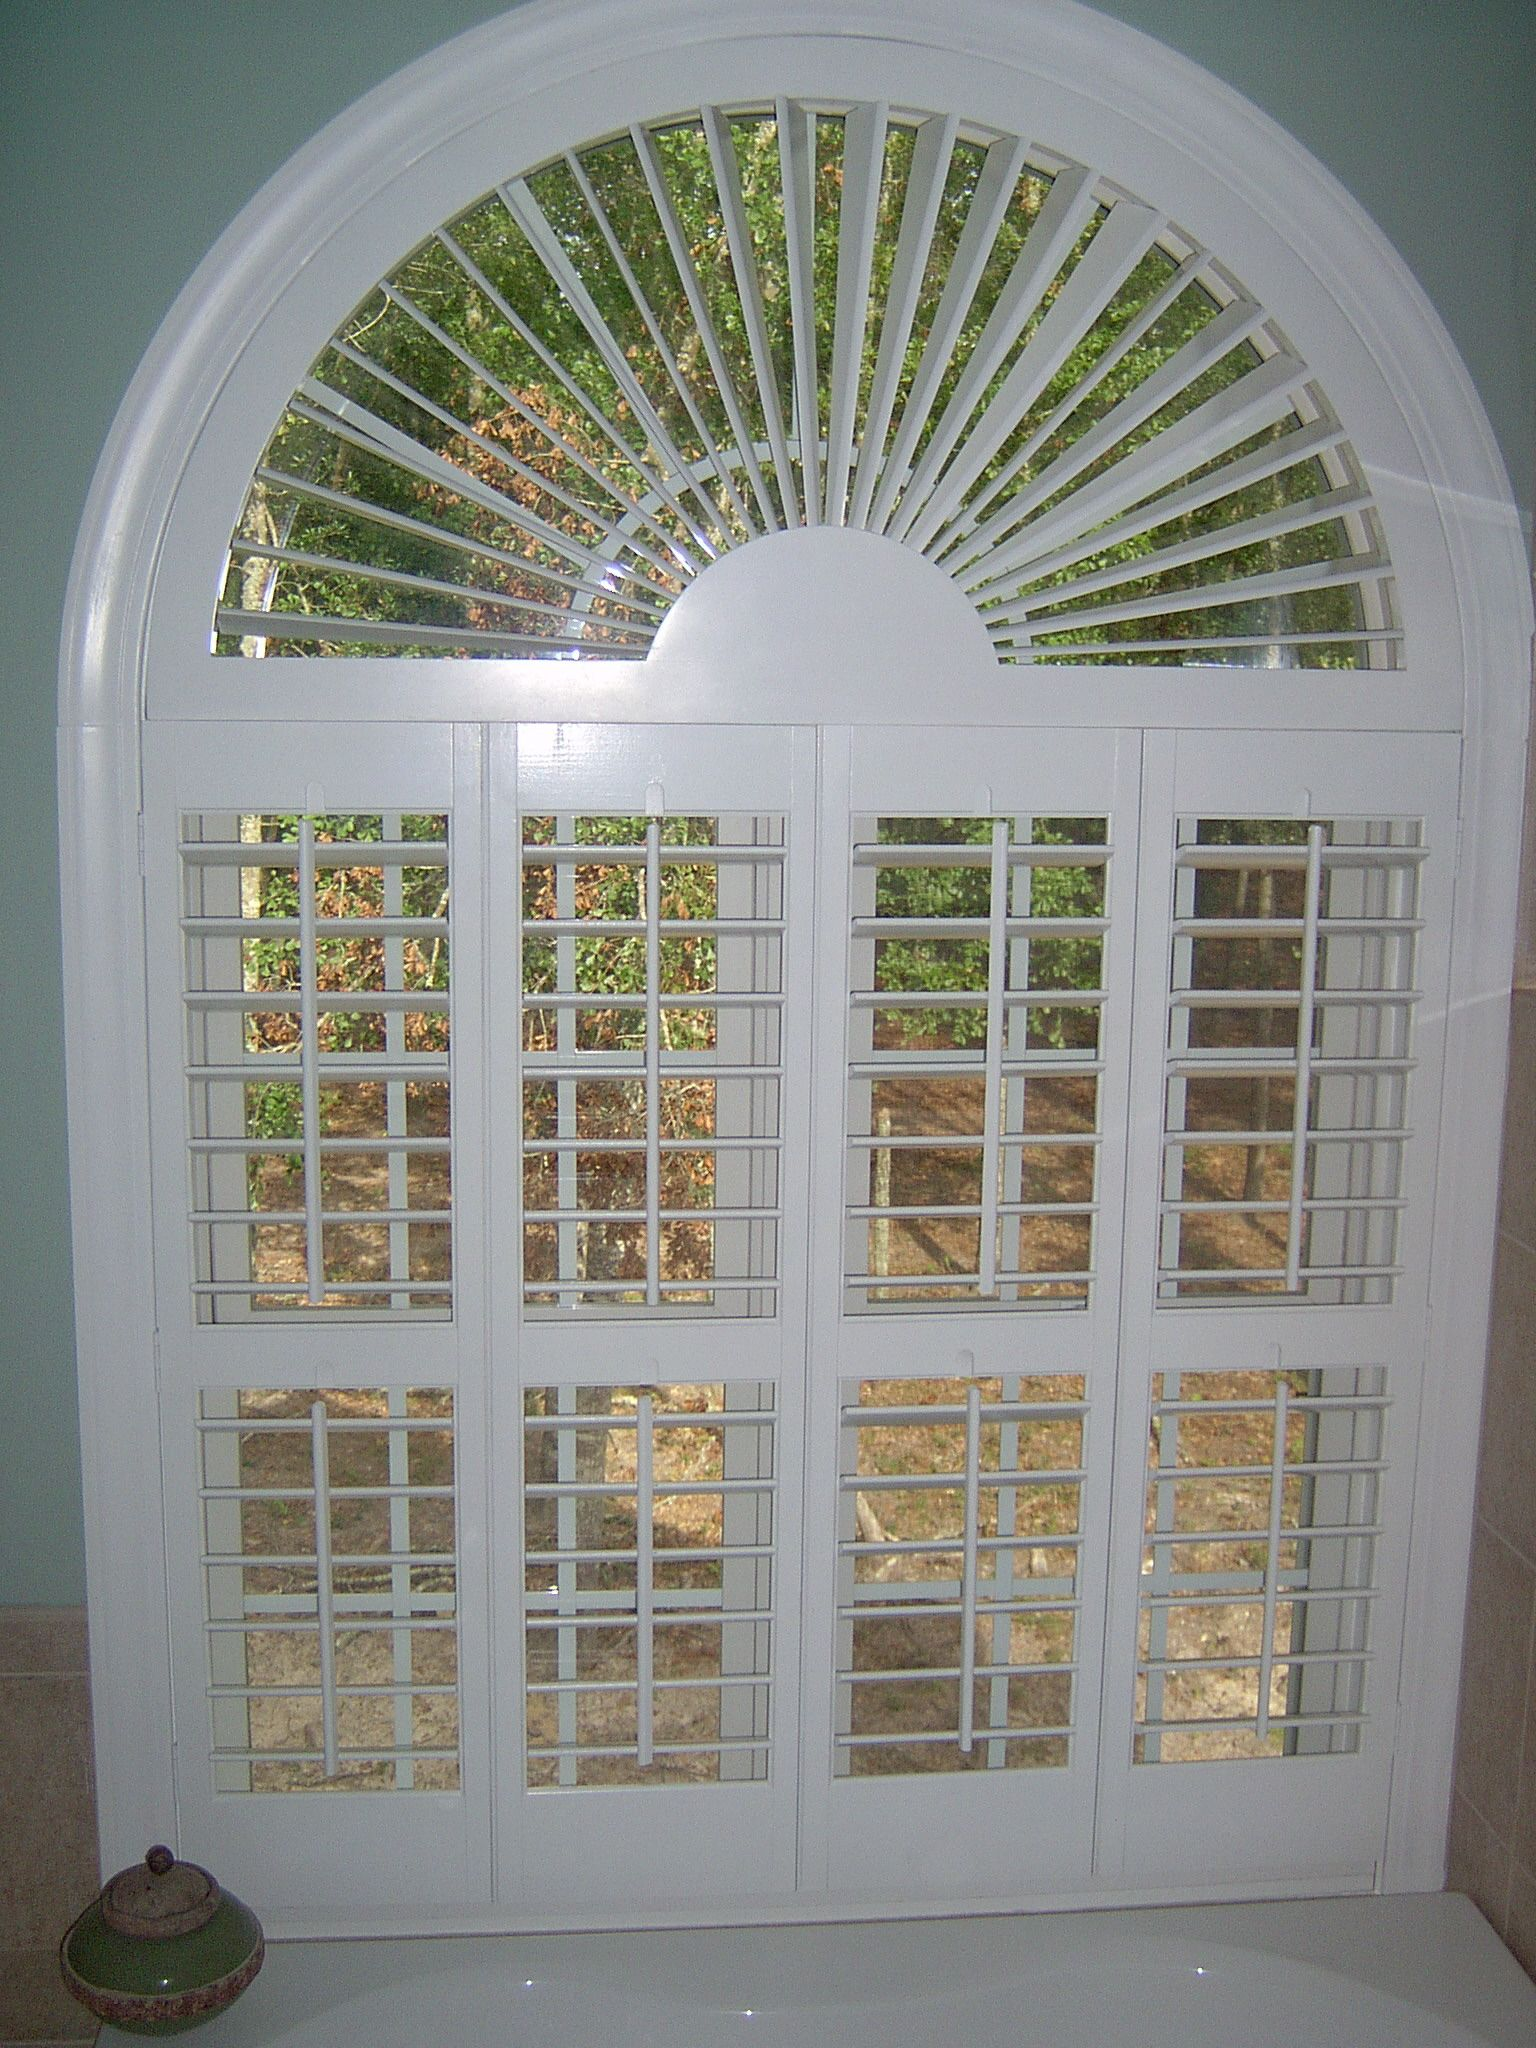 top round designs decor windows custom best blinds plantation to shutters moon window half vertical reasons for quarter love venetian